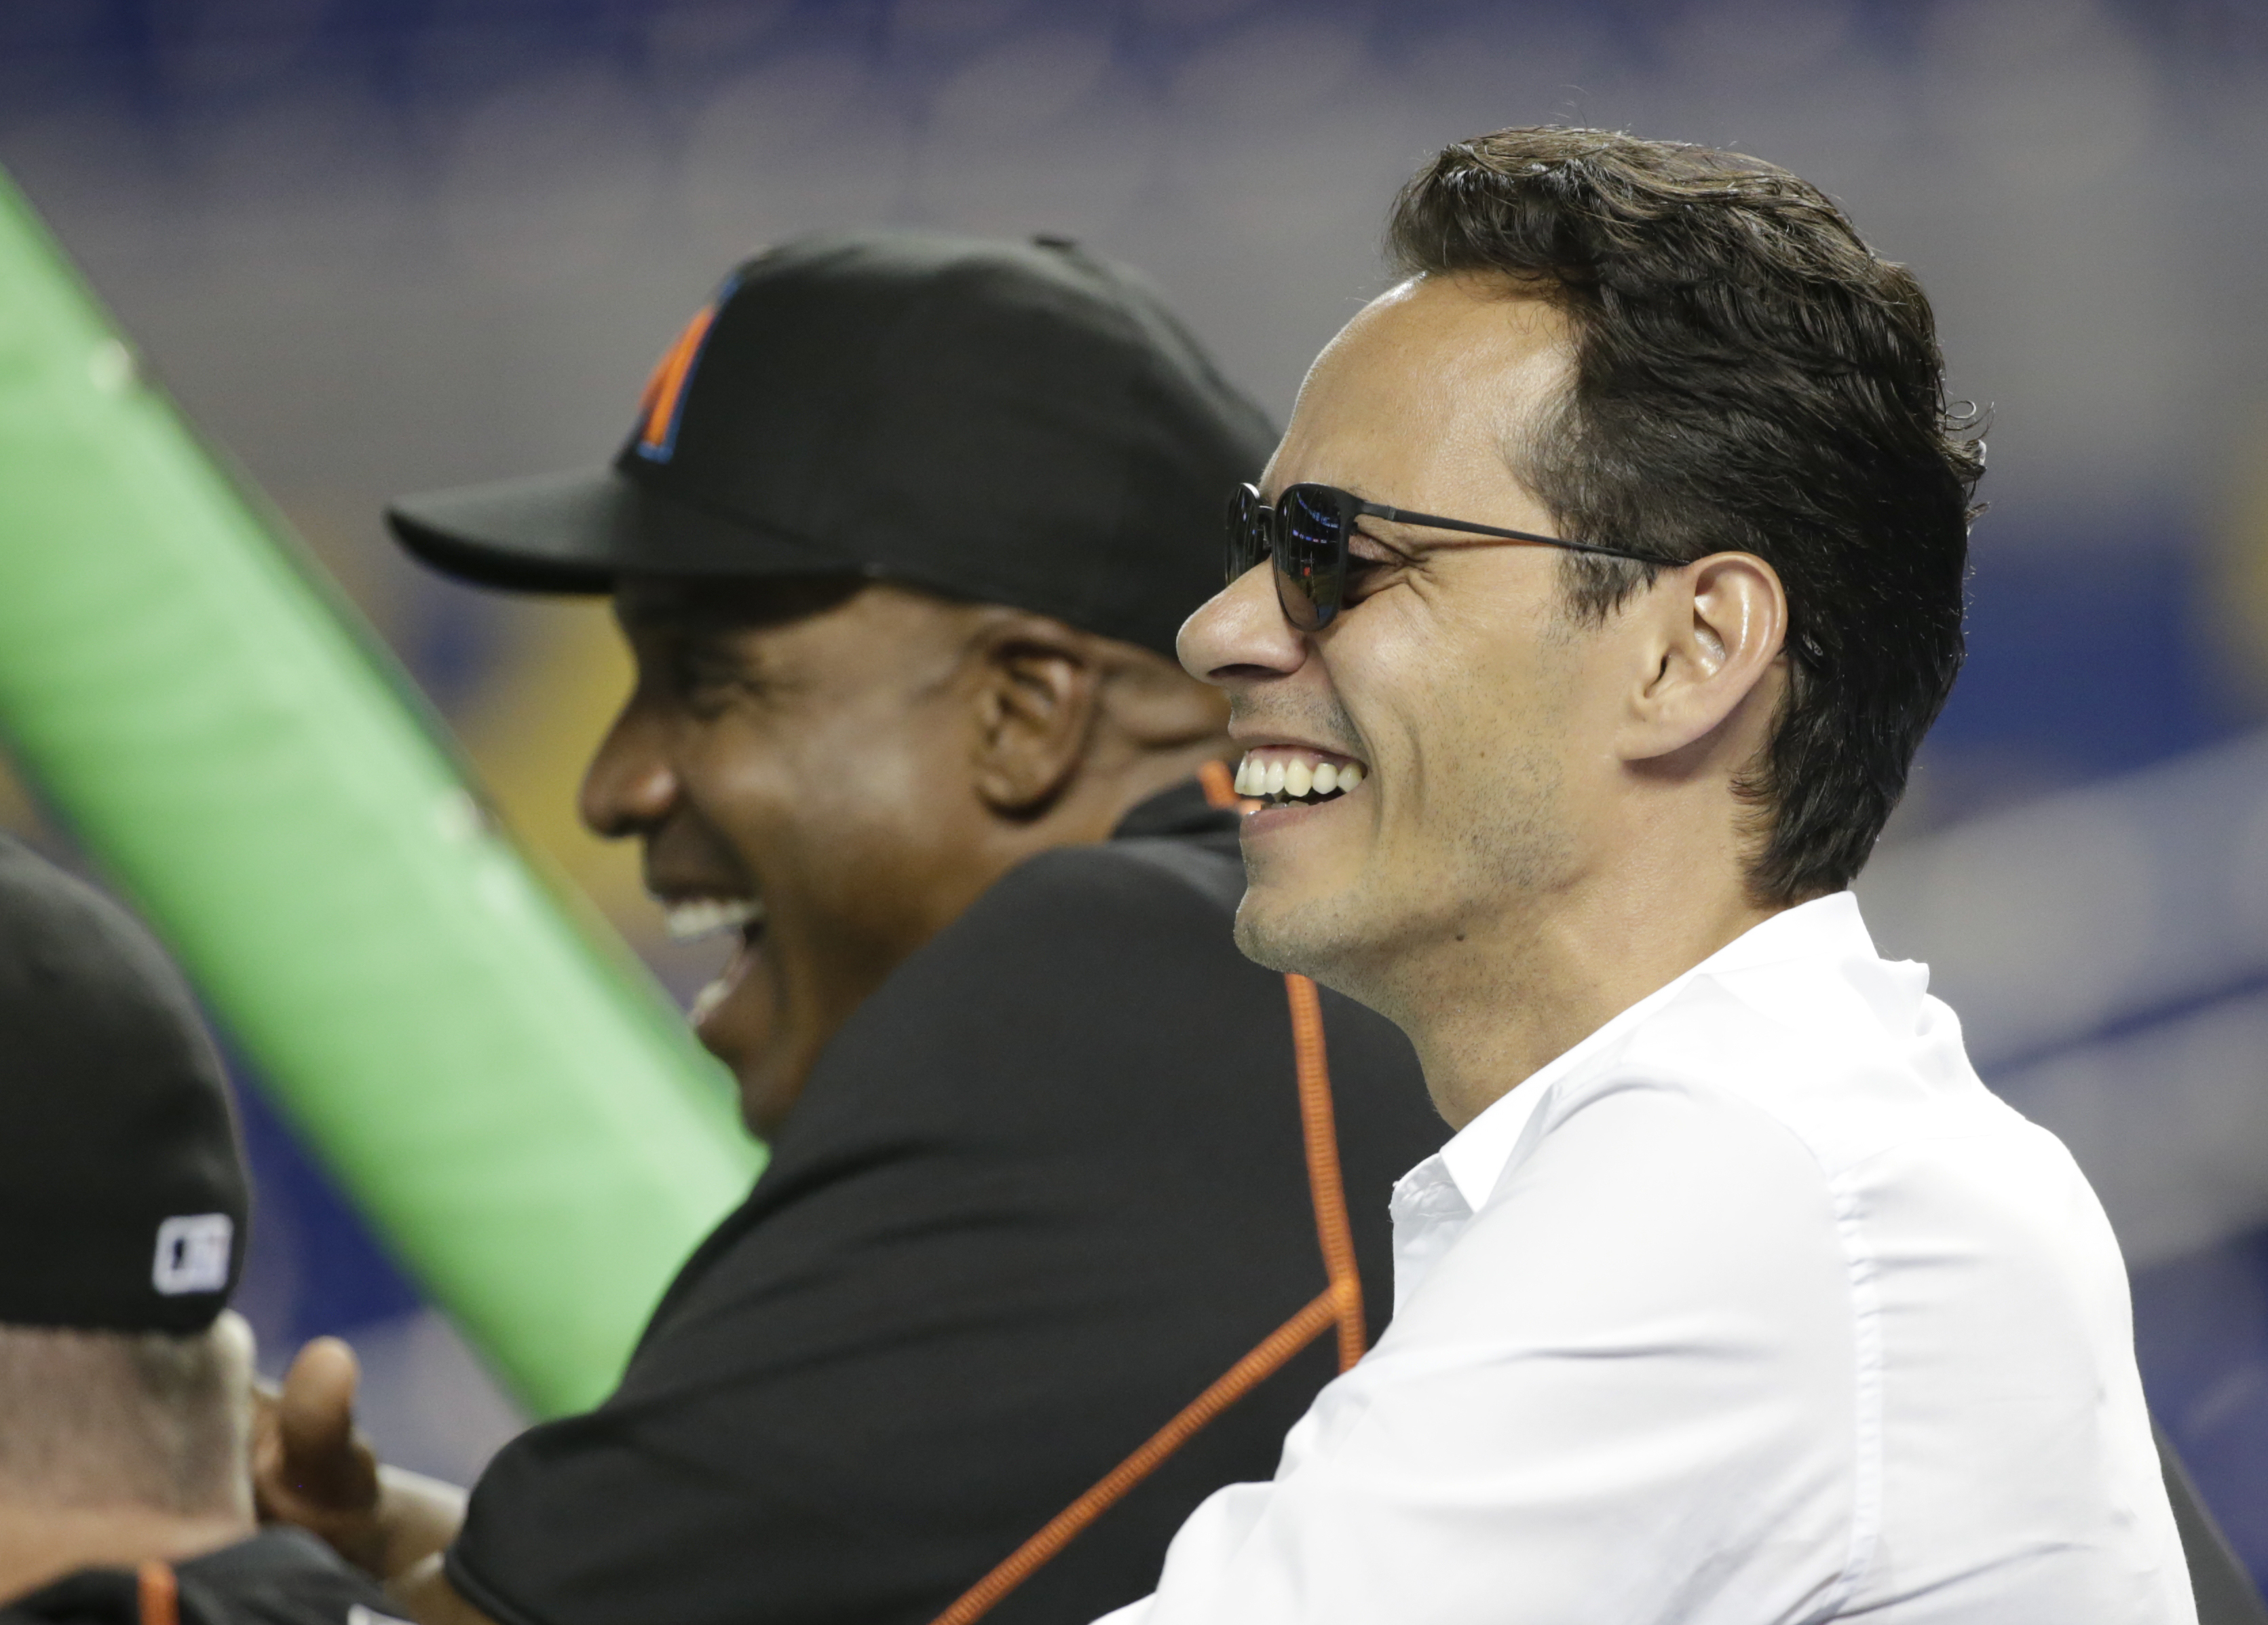 Entertainer Marc Anthony, foreground, watches Miami Marlins batting practice with hitting coach Barry Bonds, rear, before the start of a baseball game between the Miami Marlins and the New York Mets, Friday, June 3, 2016, in Miami. (AP Photo/Wilfredo Lee)